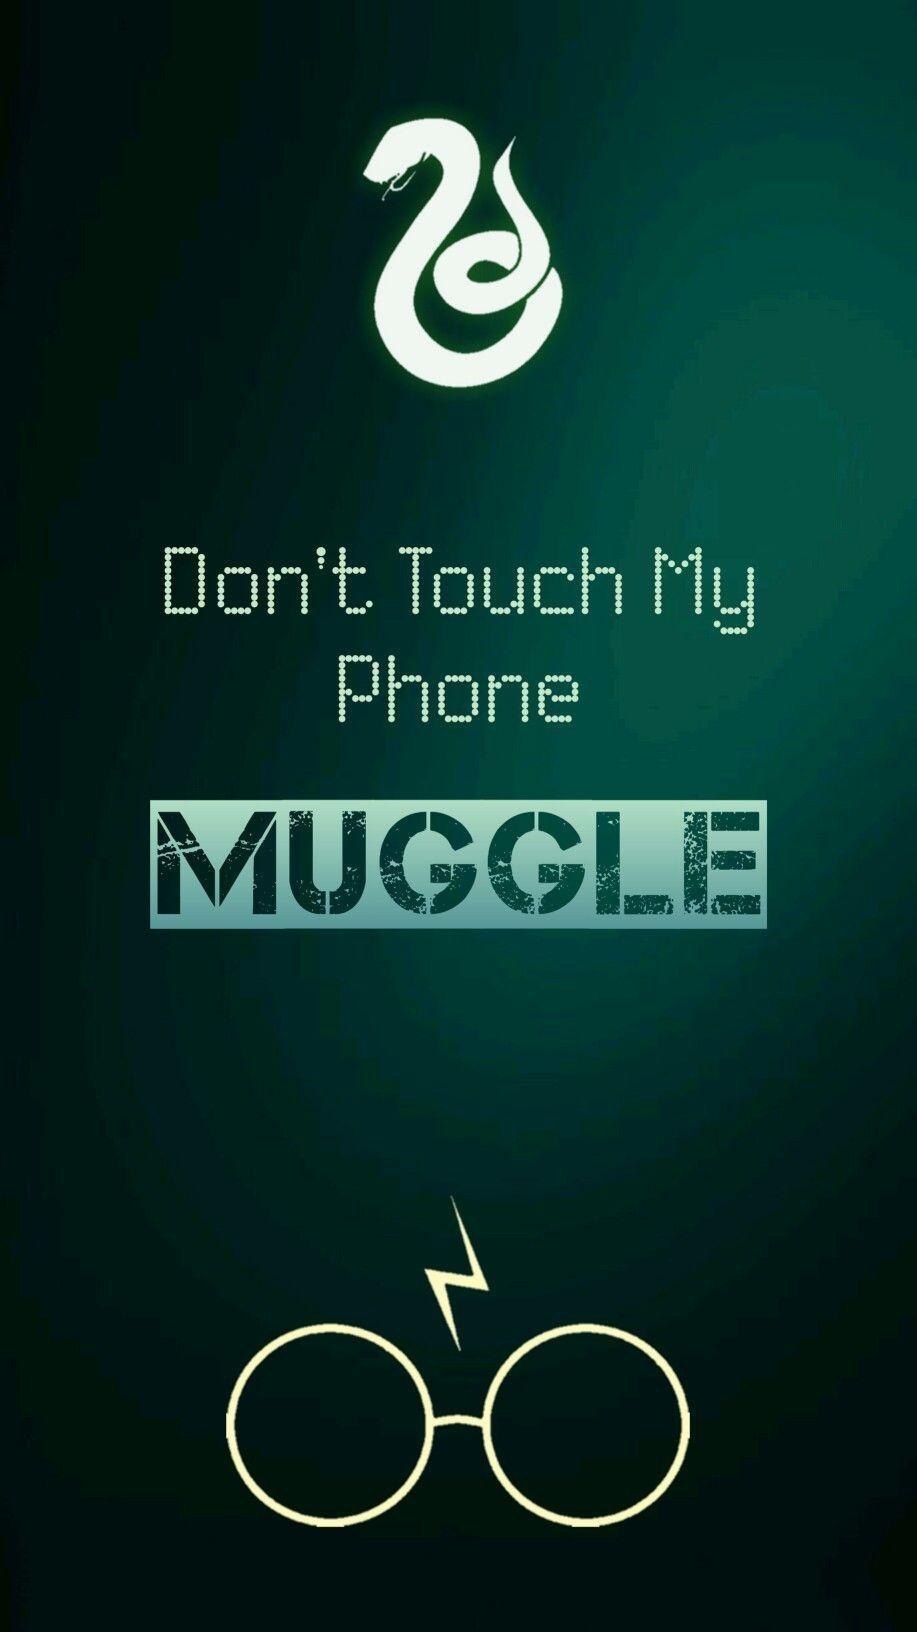 Harry Potter Slytherin Backgrounds Harry Potter Iphone Slytherin Wallpapers Wallpaper Cave harry potter iphone slytherin